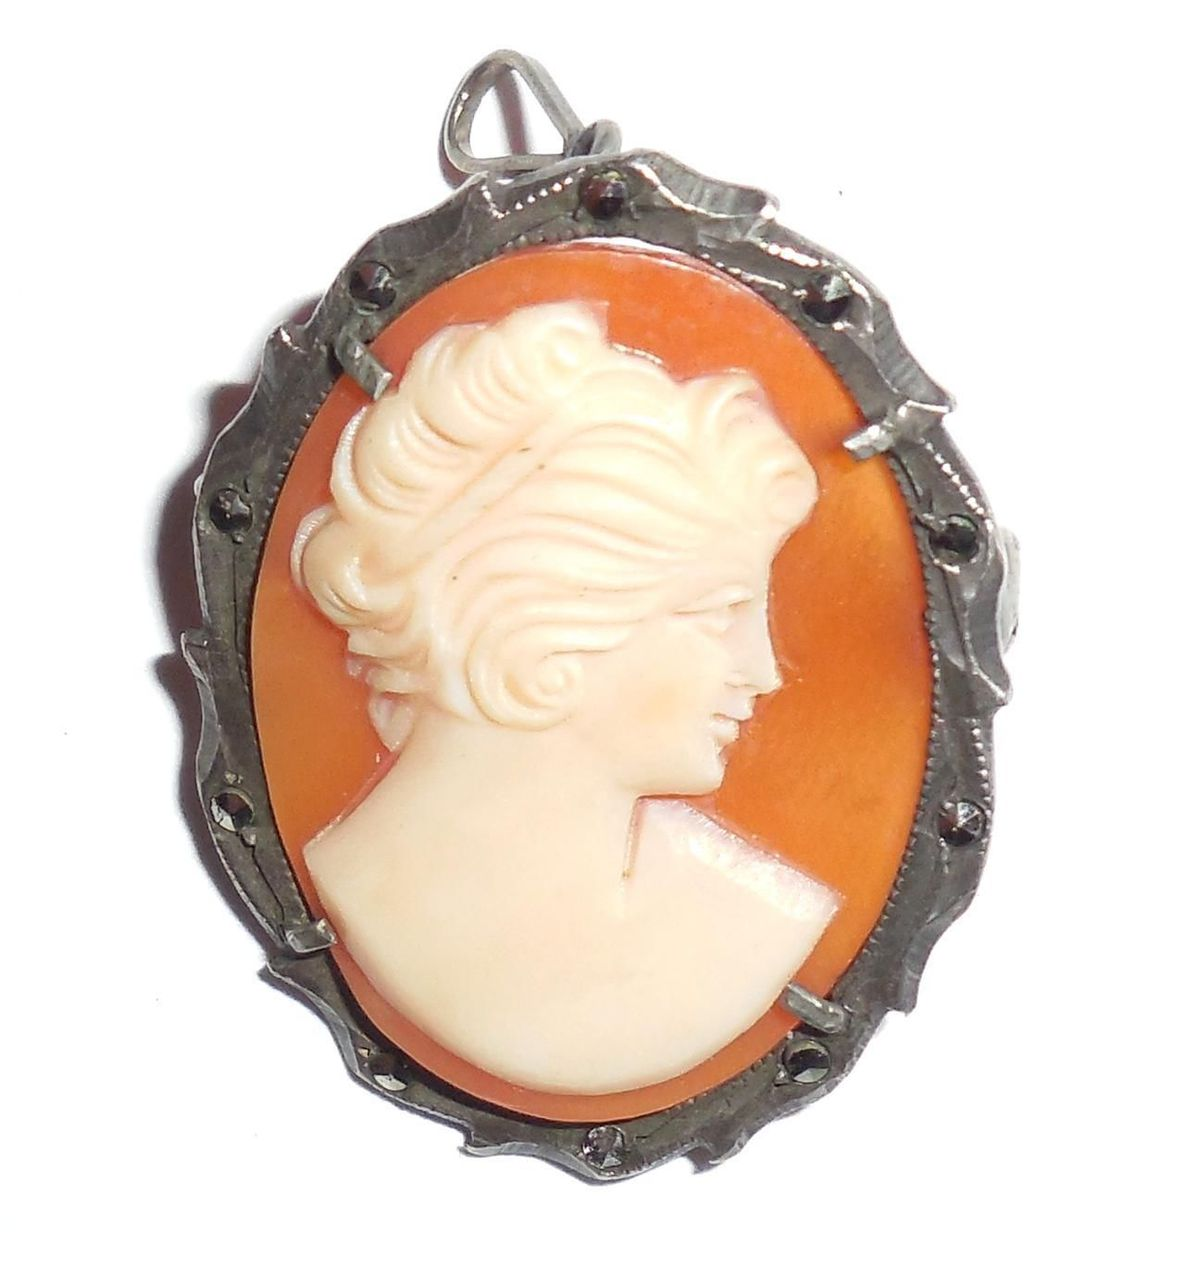 Art deco 800 fine italian silver carved shell cameo pendant pin euro art deco 800 fine italian silver marcasites carved shell cameo pendant pin euro aloadofball Image collections